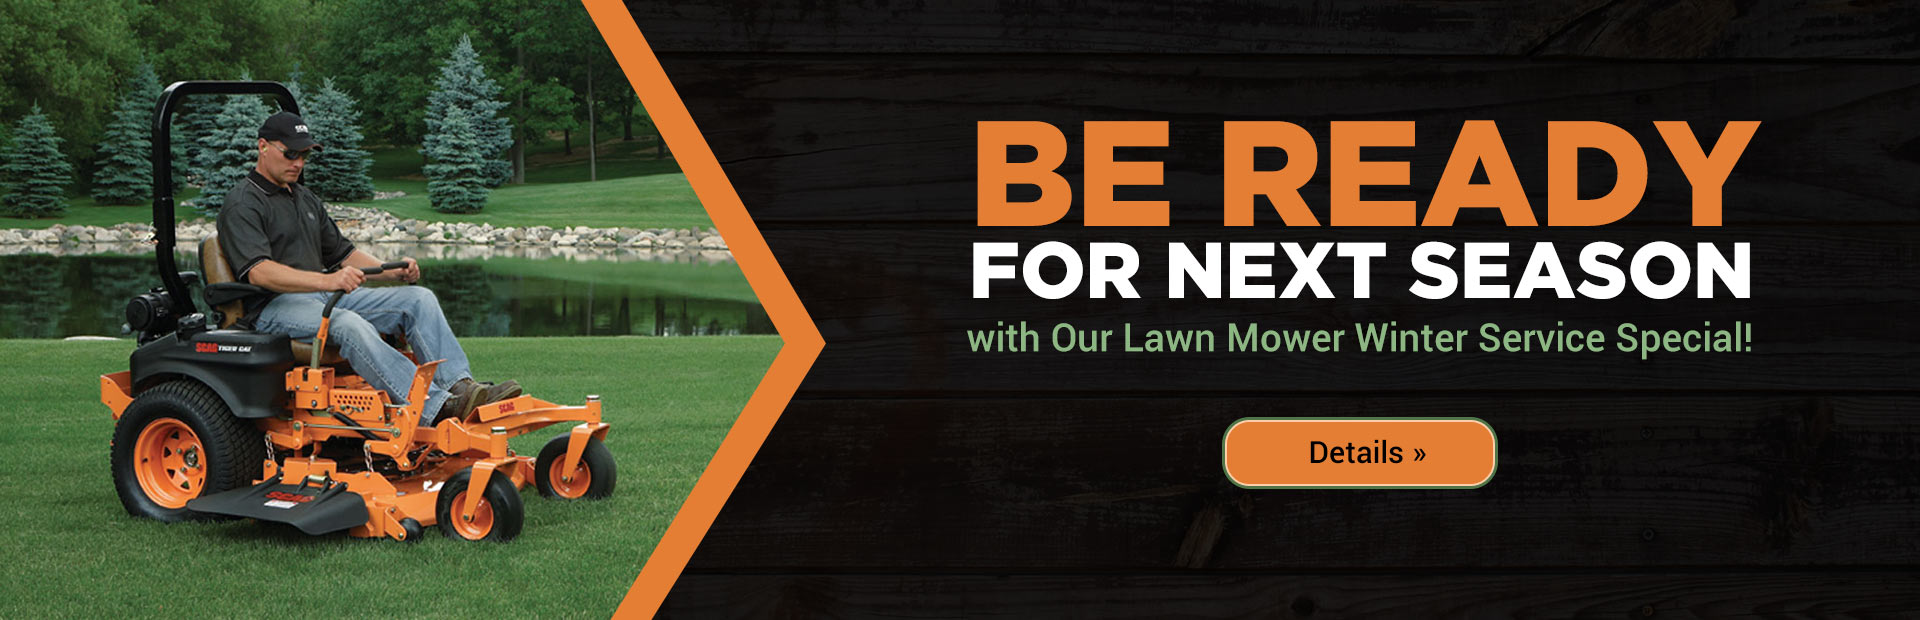 Be ready for next season with our Lawn Mower Winter Service Special! Click here for details.